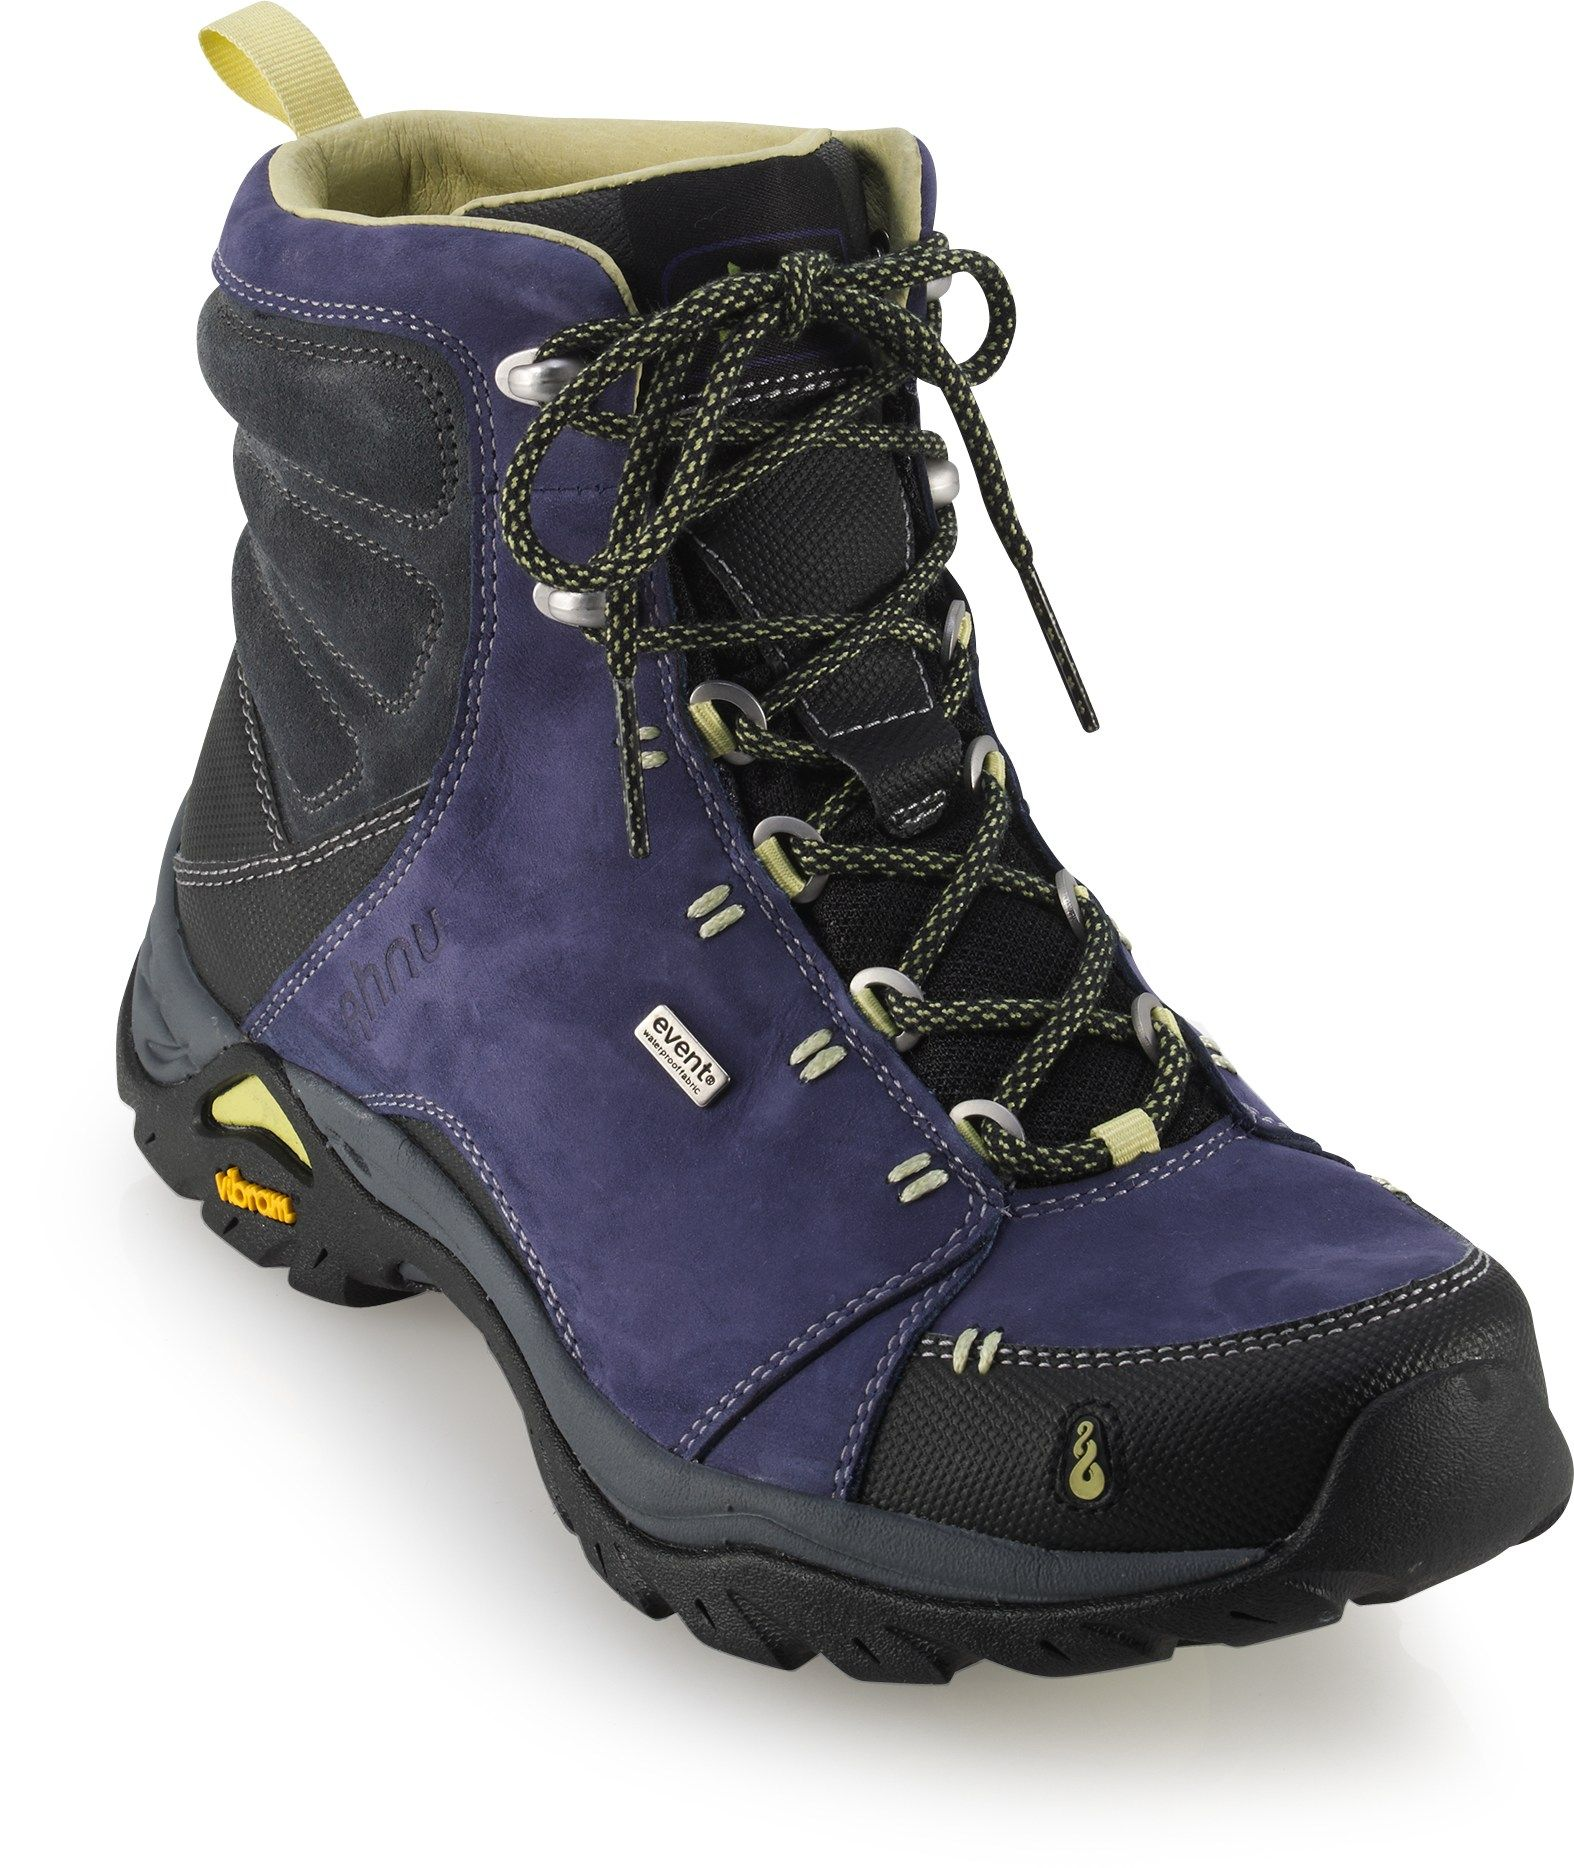 montara women The ahnu women's montara hiking boot is one of the most stylish and durable boots around for adventurous women check out our review here.